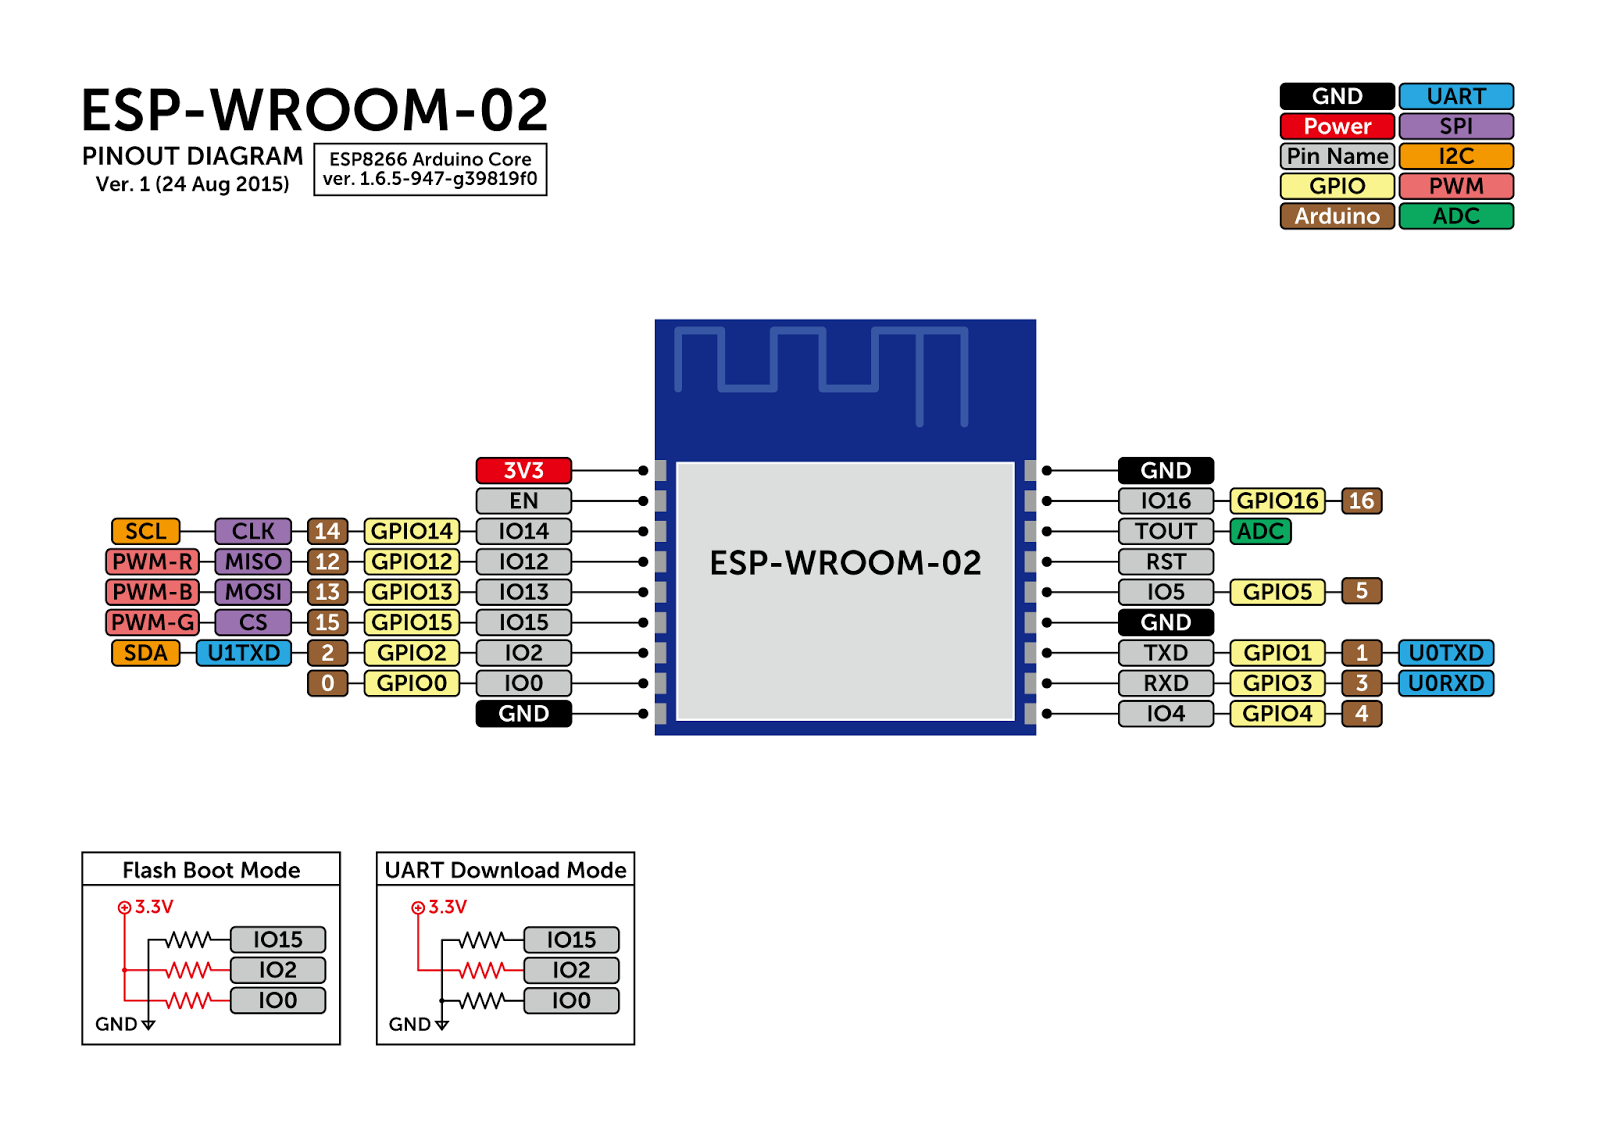 ESP-WROOM-02_pinout_diagram.png